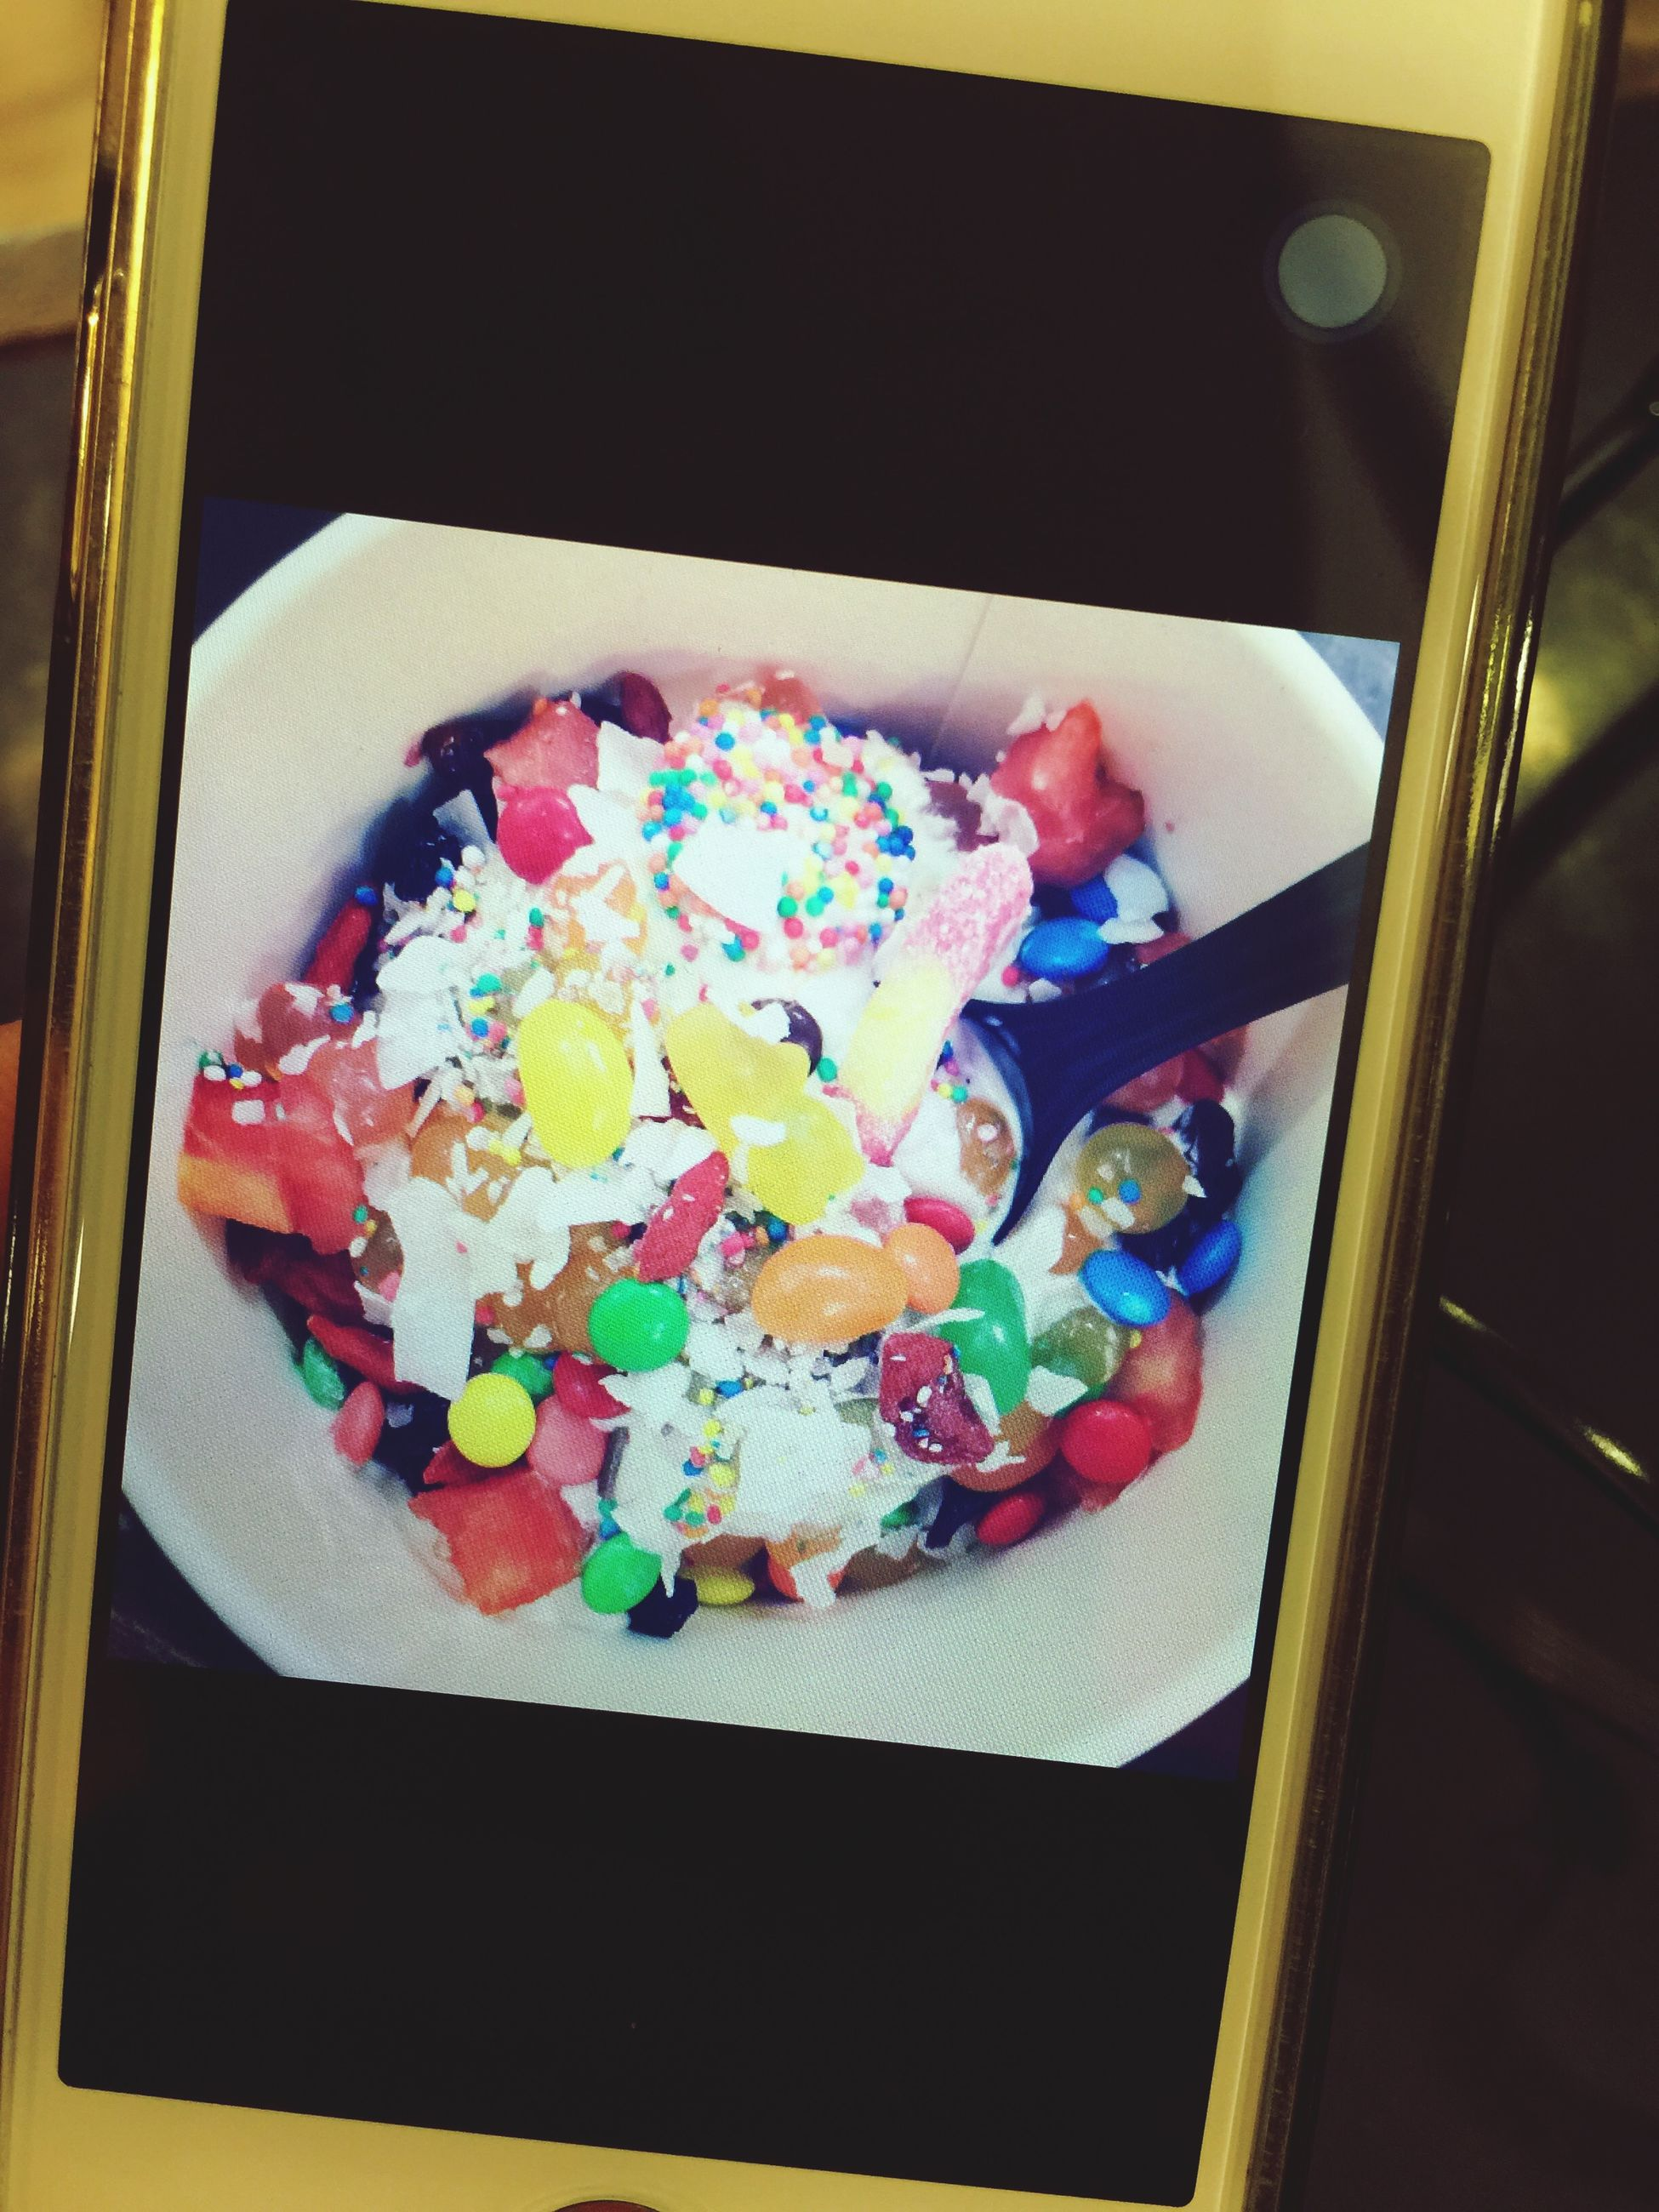 indoors, food and drink, sweet food, food, dessert, freshness, ready-to-eat, still life, indulgence, table, unhealthy eating, high angle view, plate, cake, temptation, multi colored, no people, close-up, serving size, decoration